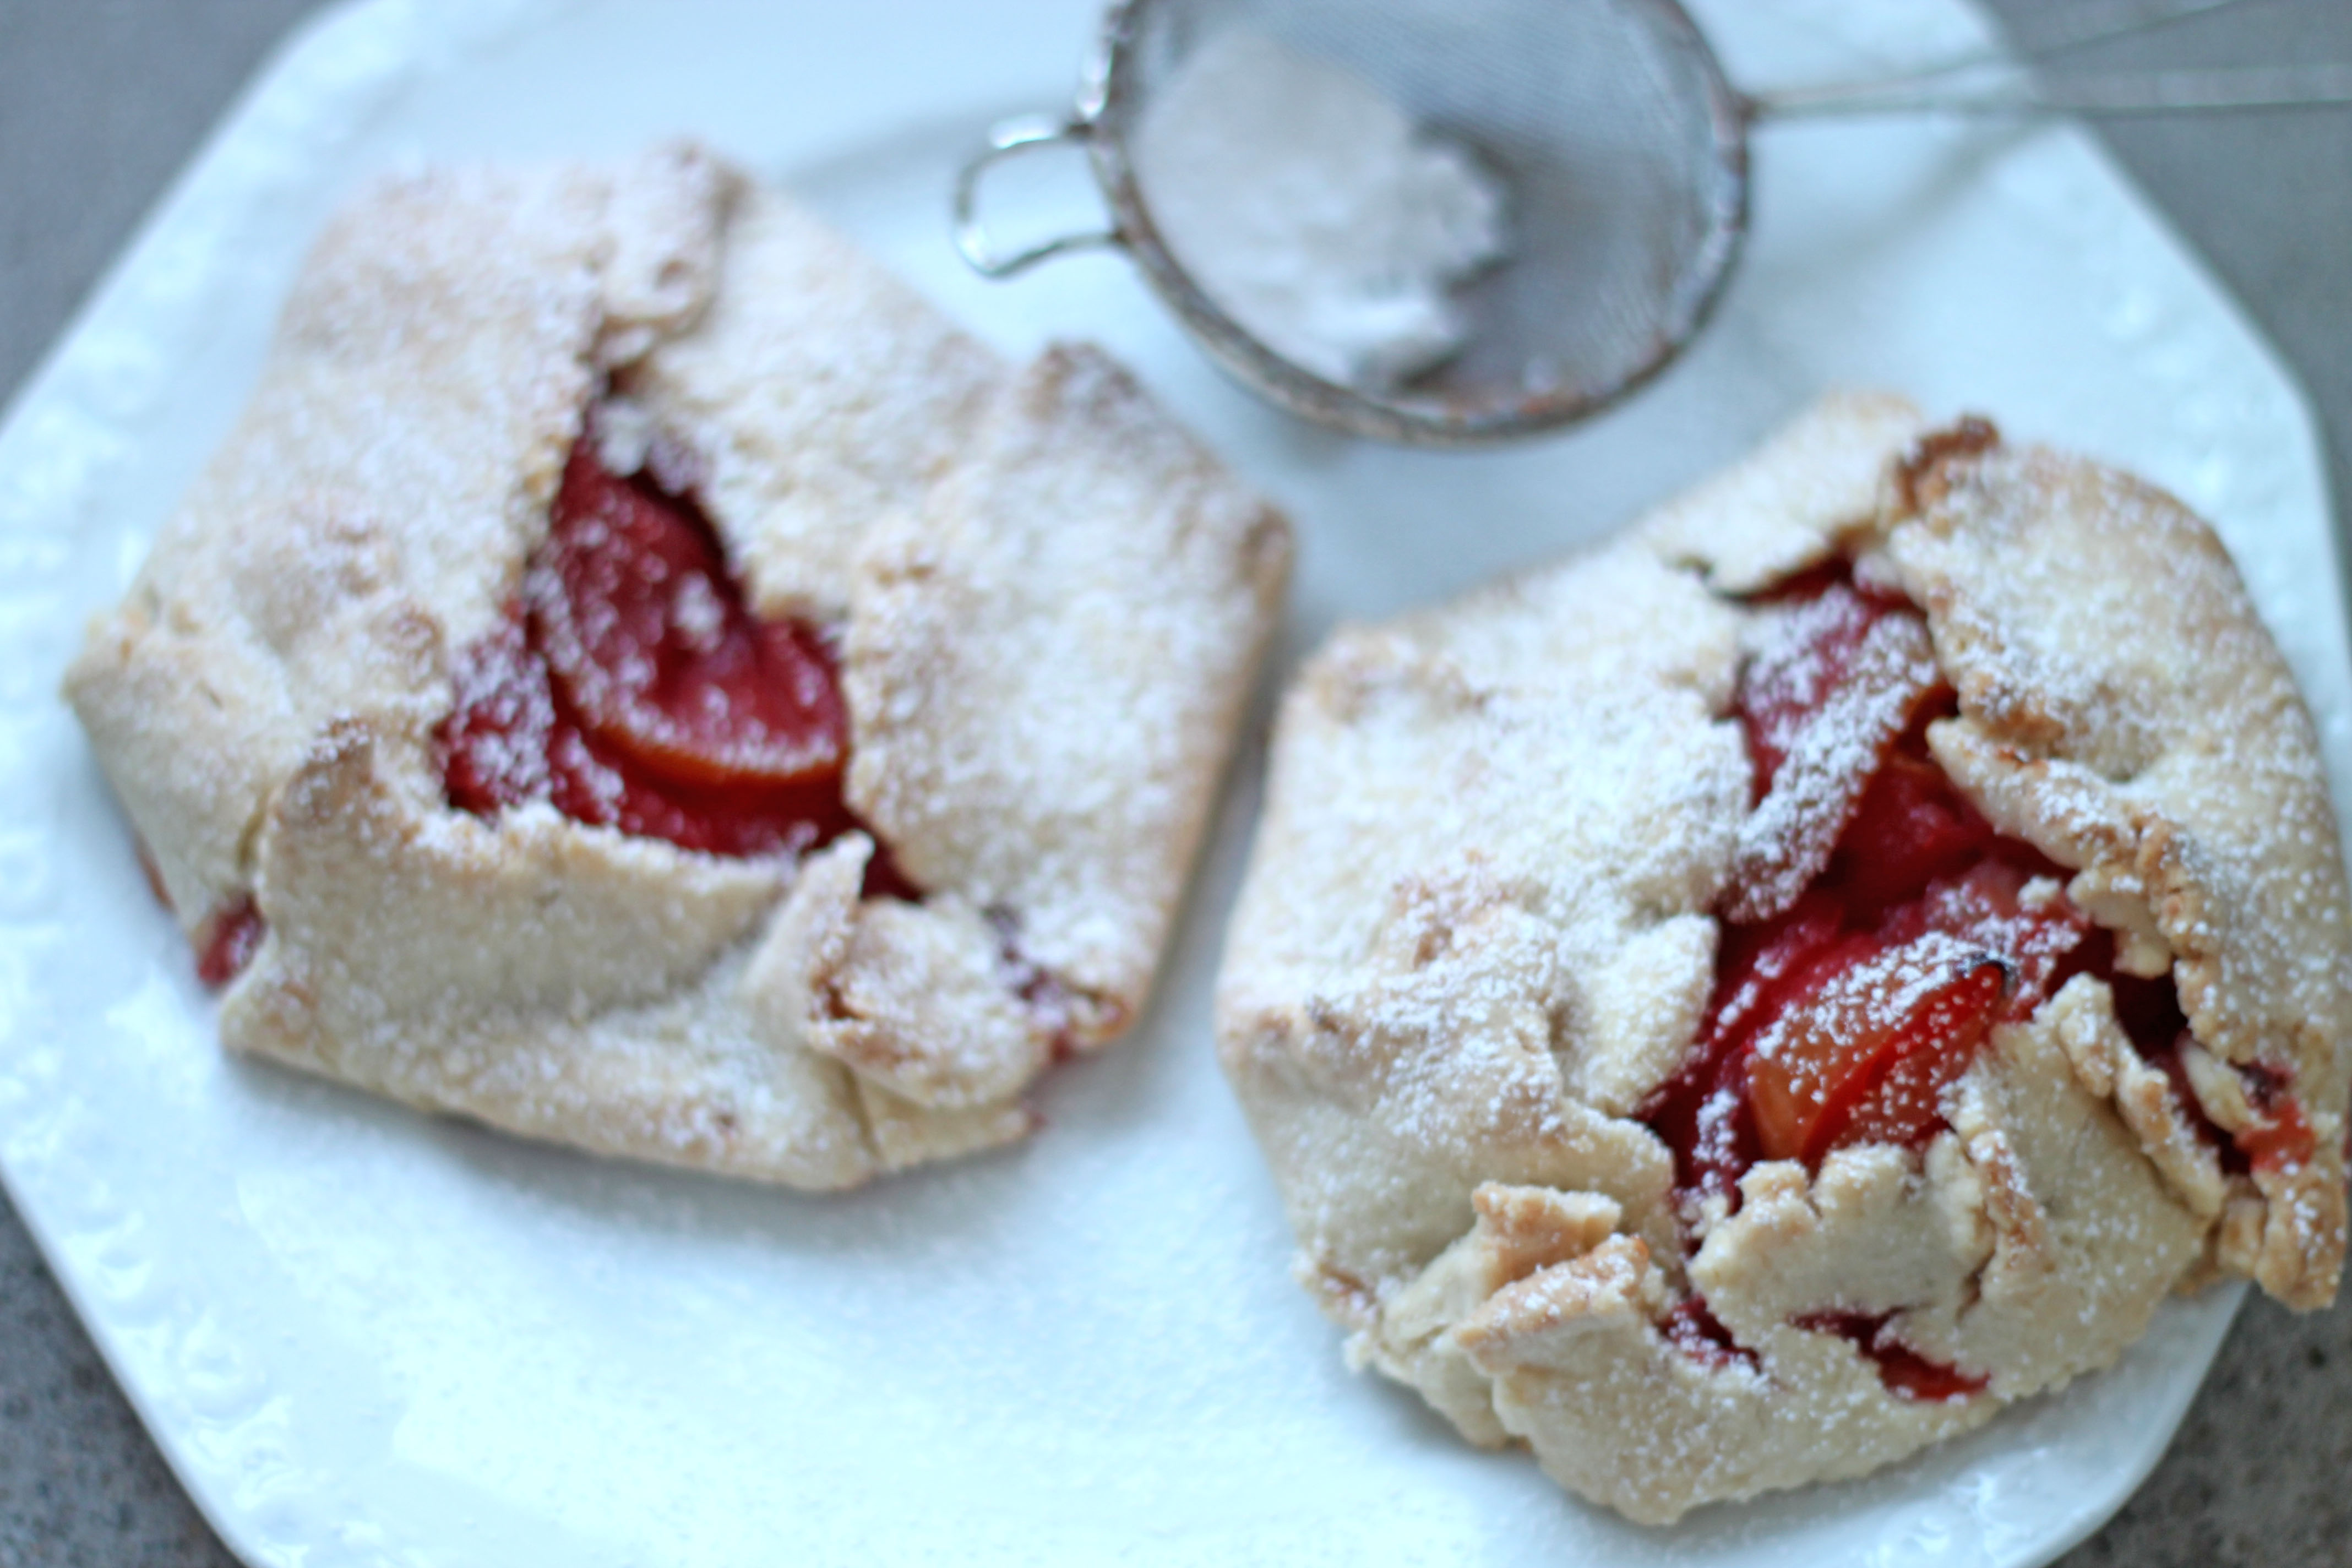 Almond pastry Apple & Strawberry flats | Sugar Thumb